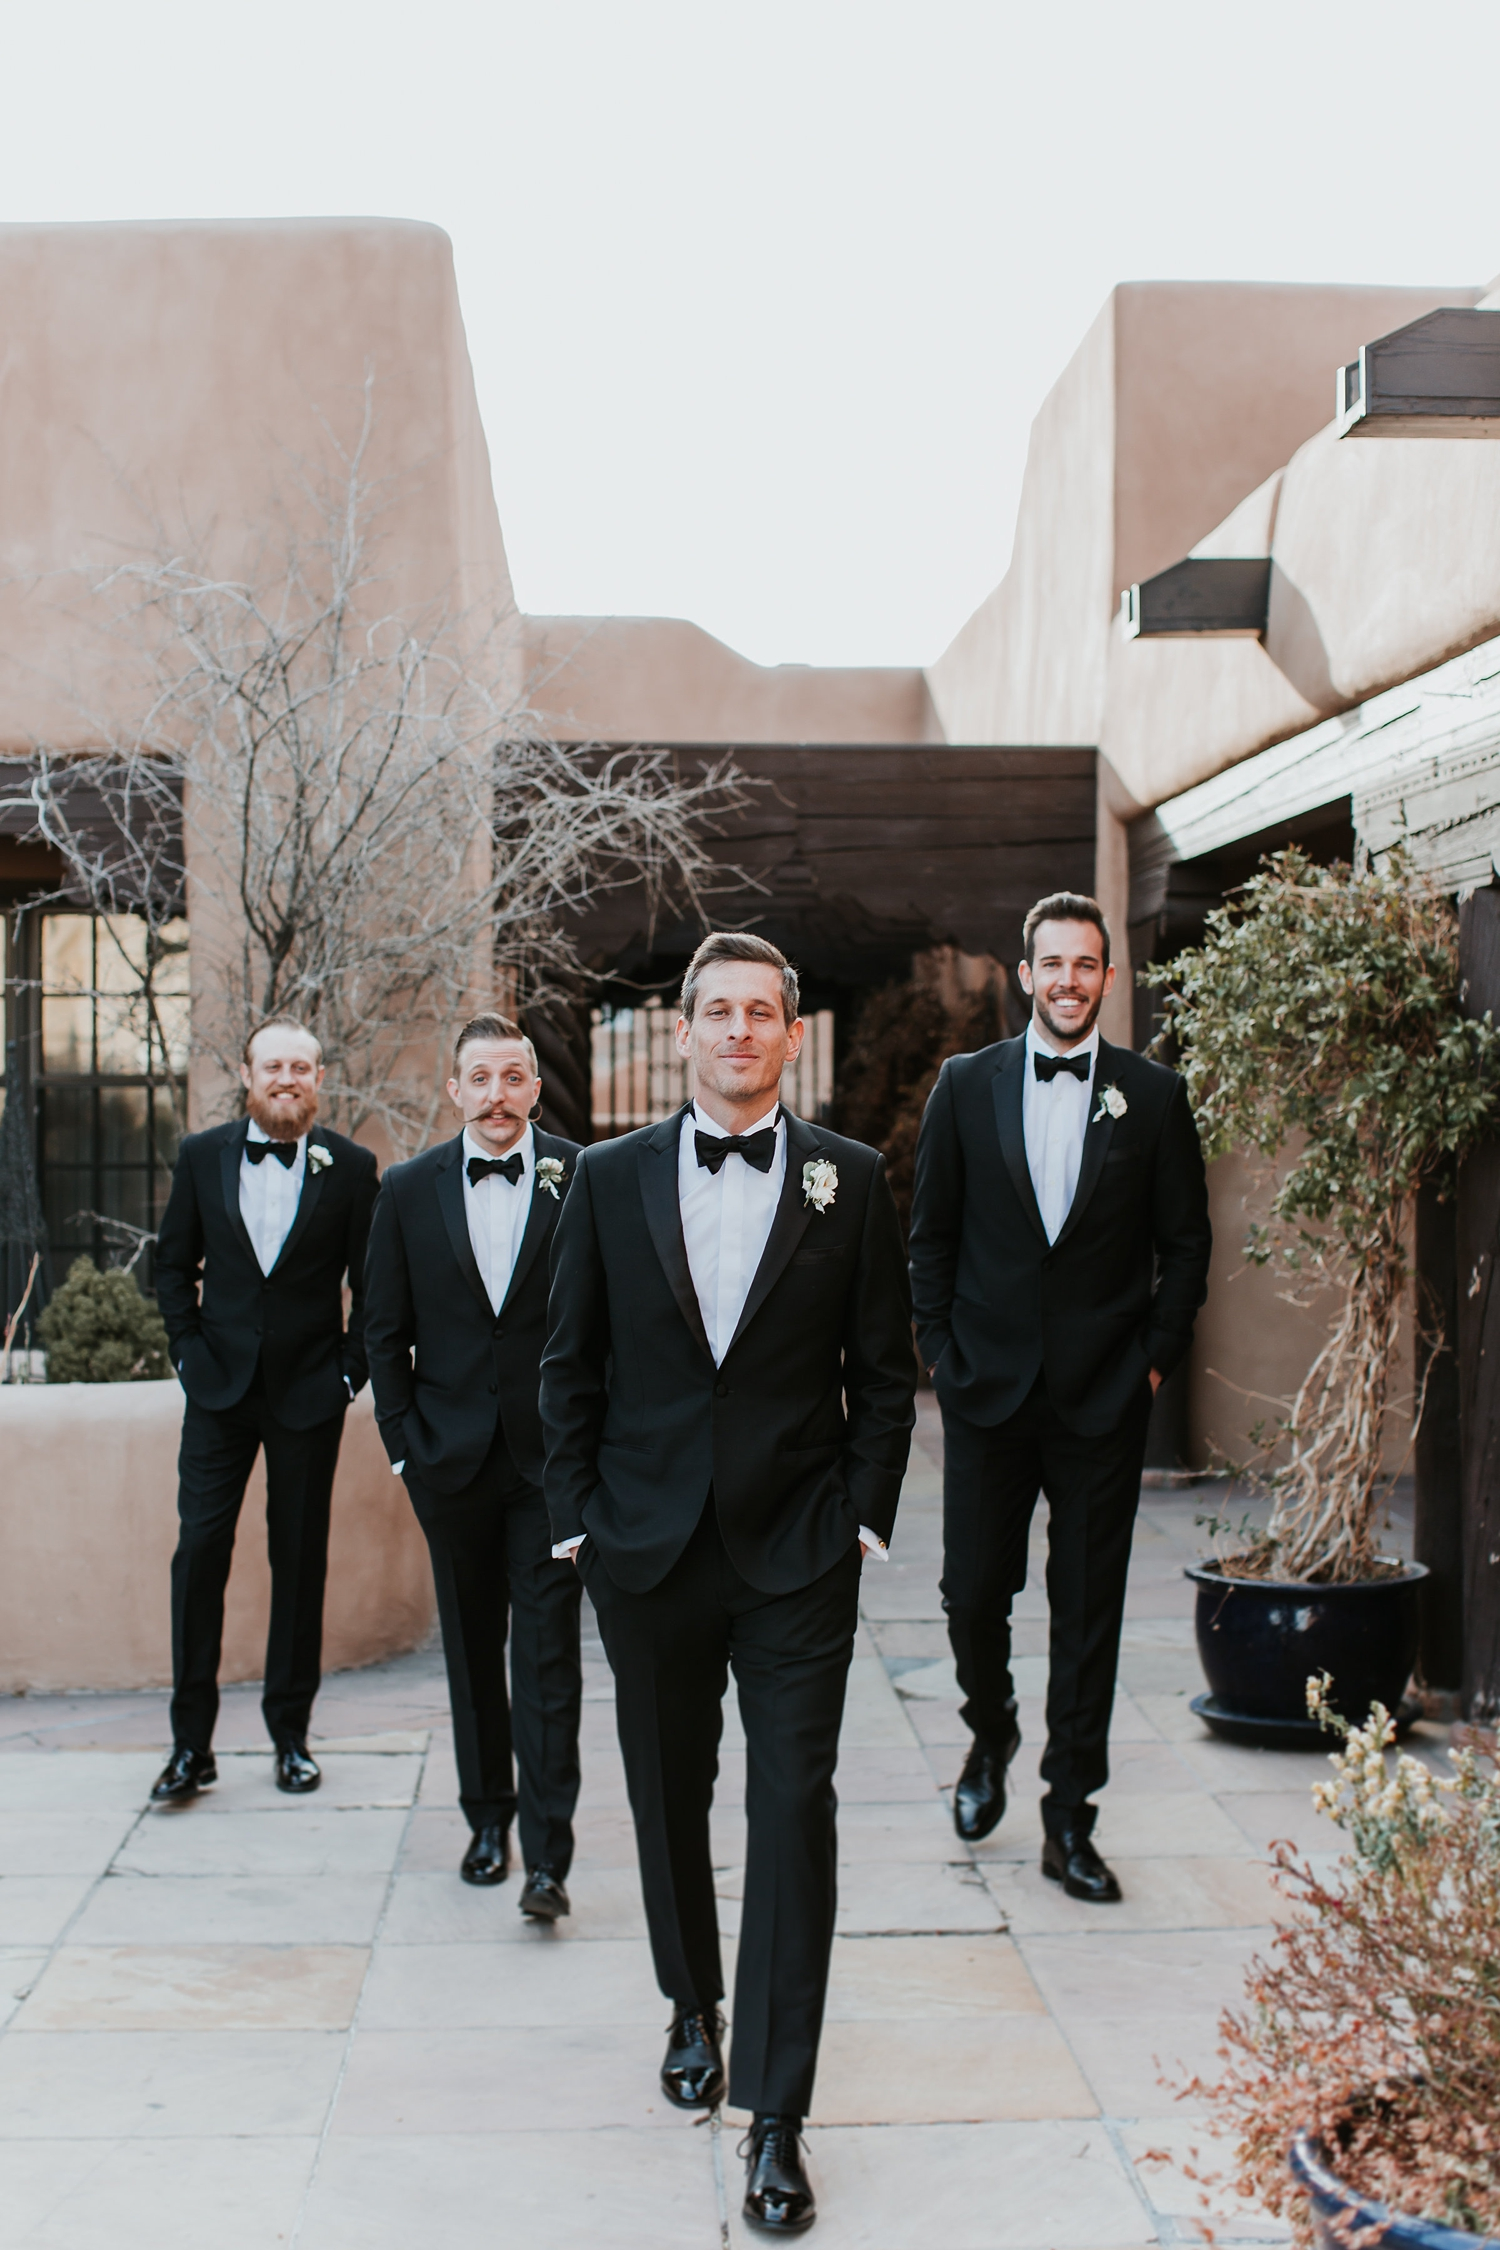 Alicia+lucia+photography+-+albuquerque+wedding+photographer+-+santa+fe+wedding+photography+-+new+mexico+wedding+photographer+-+la+fonda+wedding+-+la+fonda+winter+wedding_0058.jpg